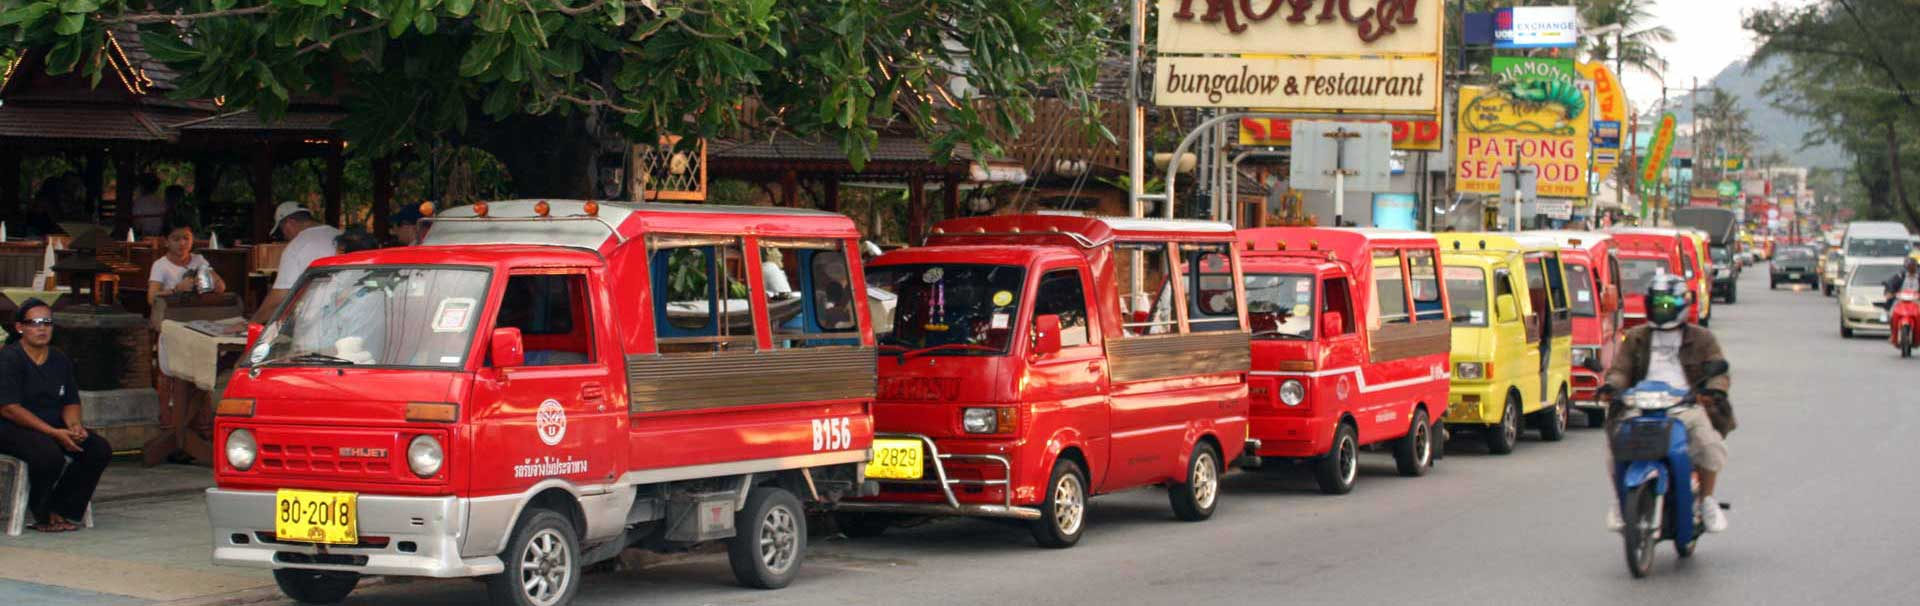 Tuk Tuks on a row in Phuket